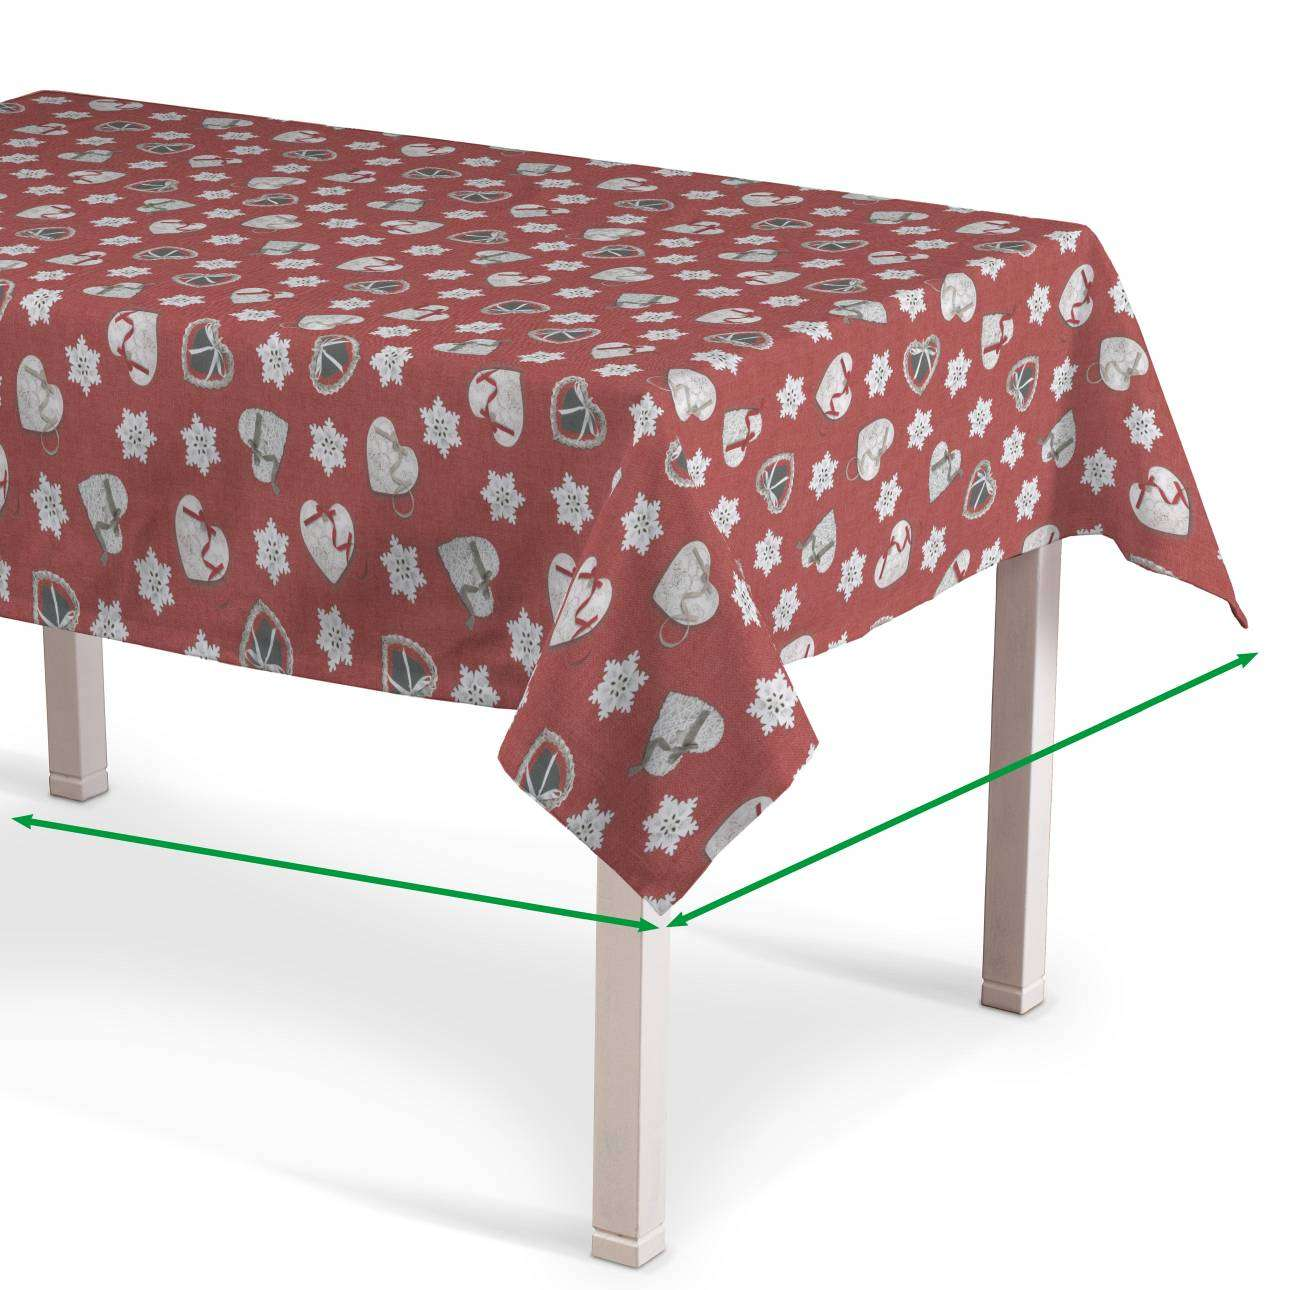 Rectangular tablecloth in collection Christmas, fabric: 629-29